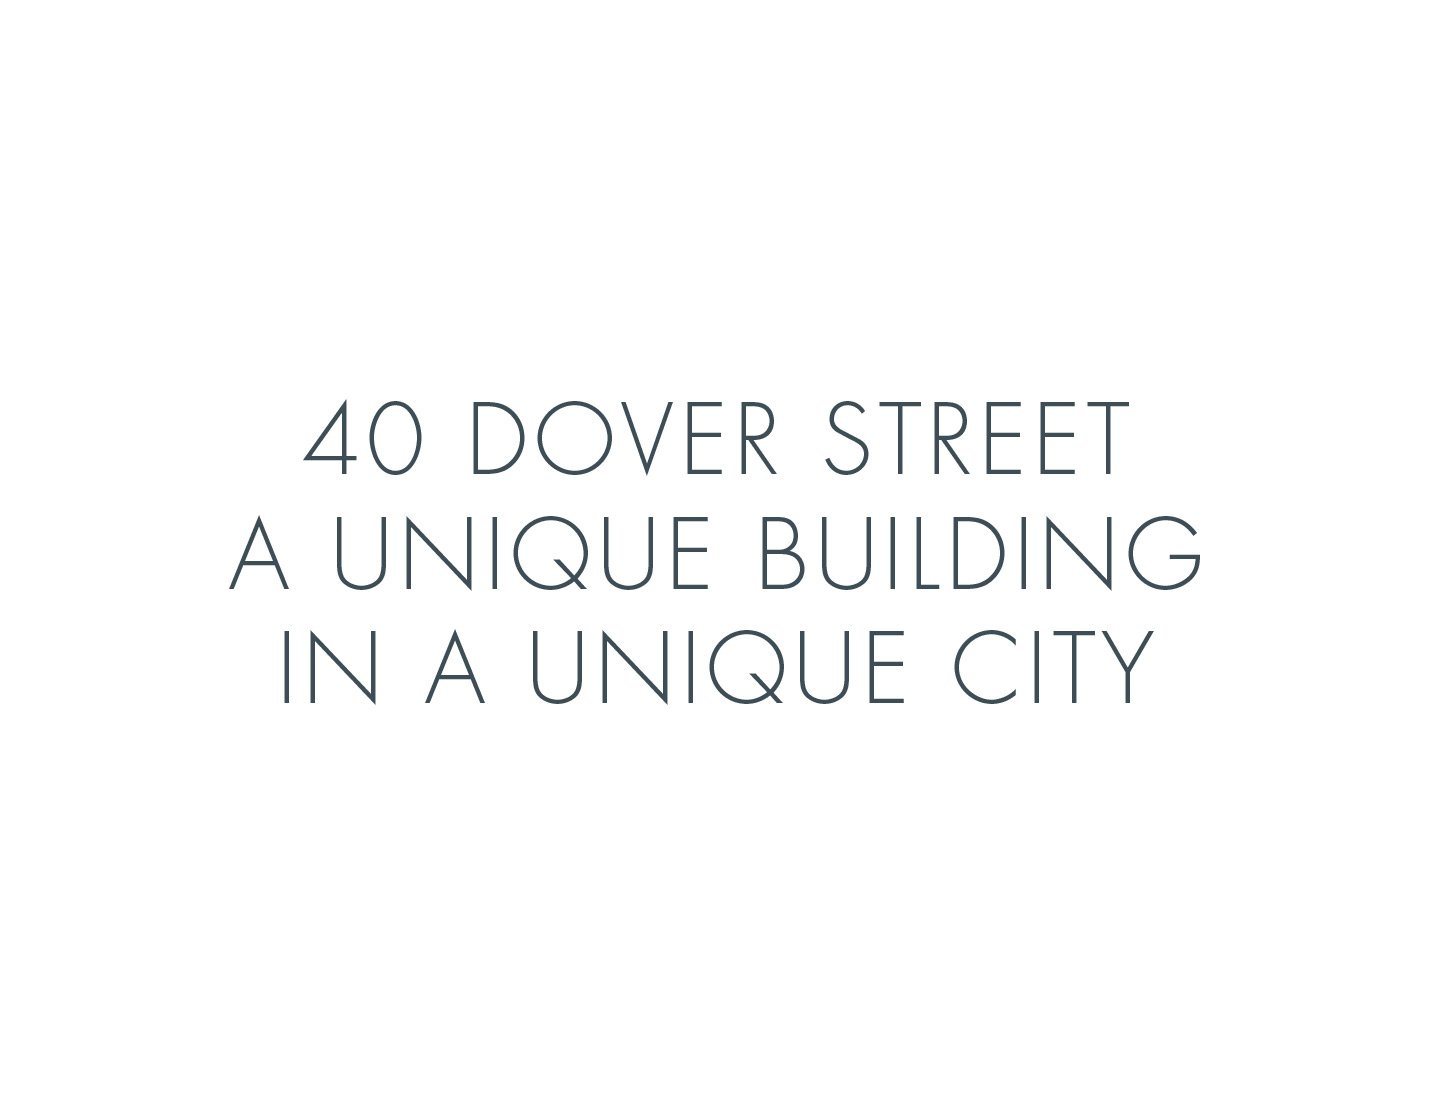 The Arts Club, 40 Dover Street Brochure Quote